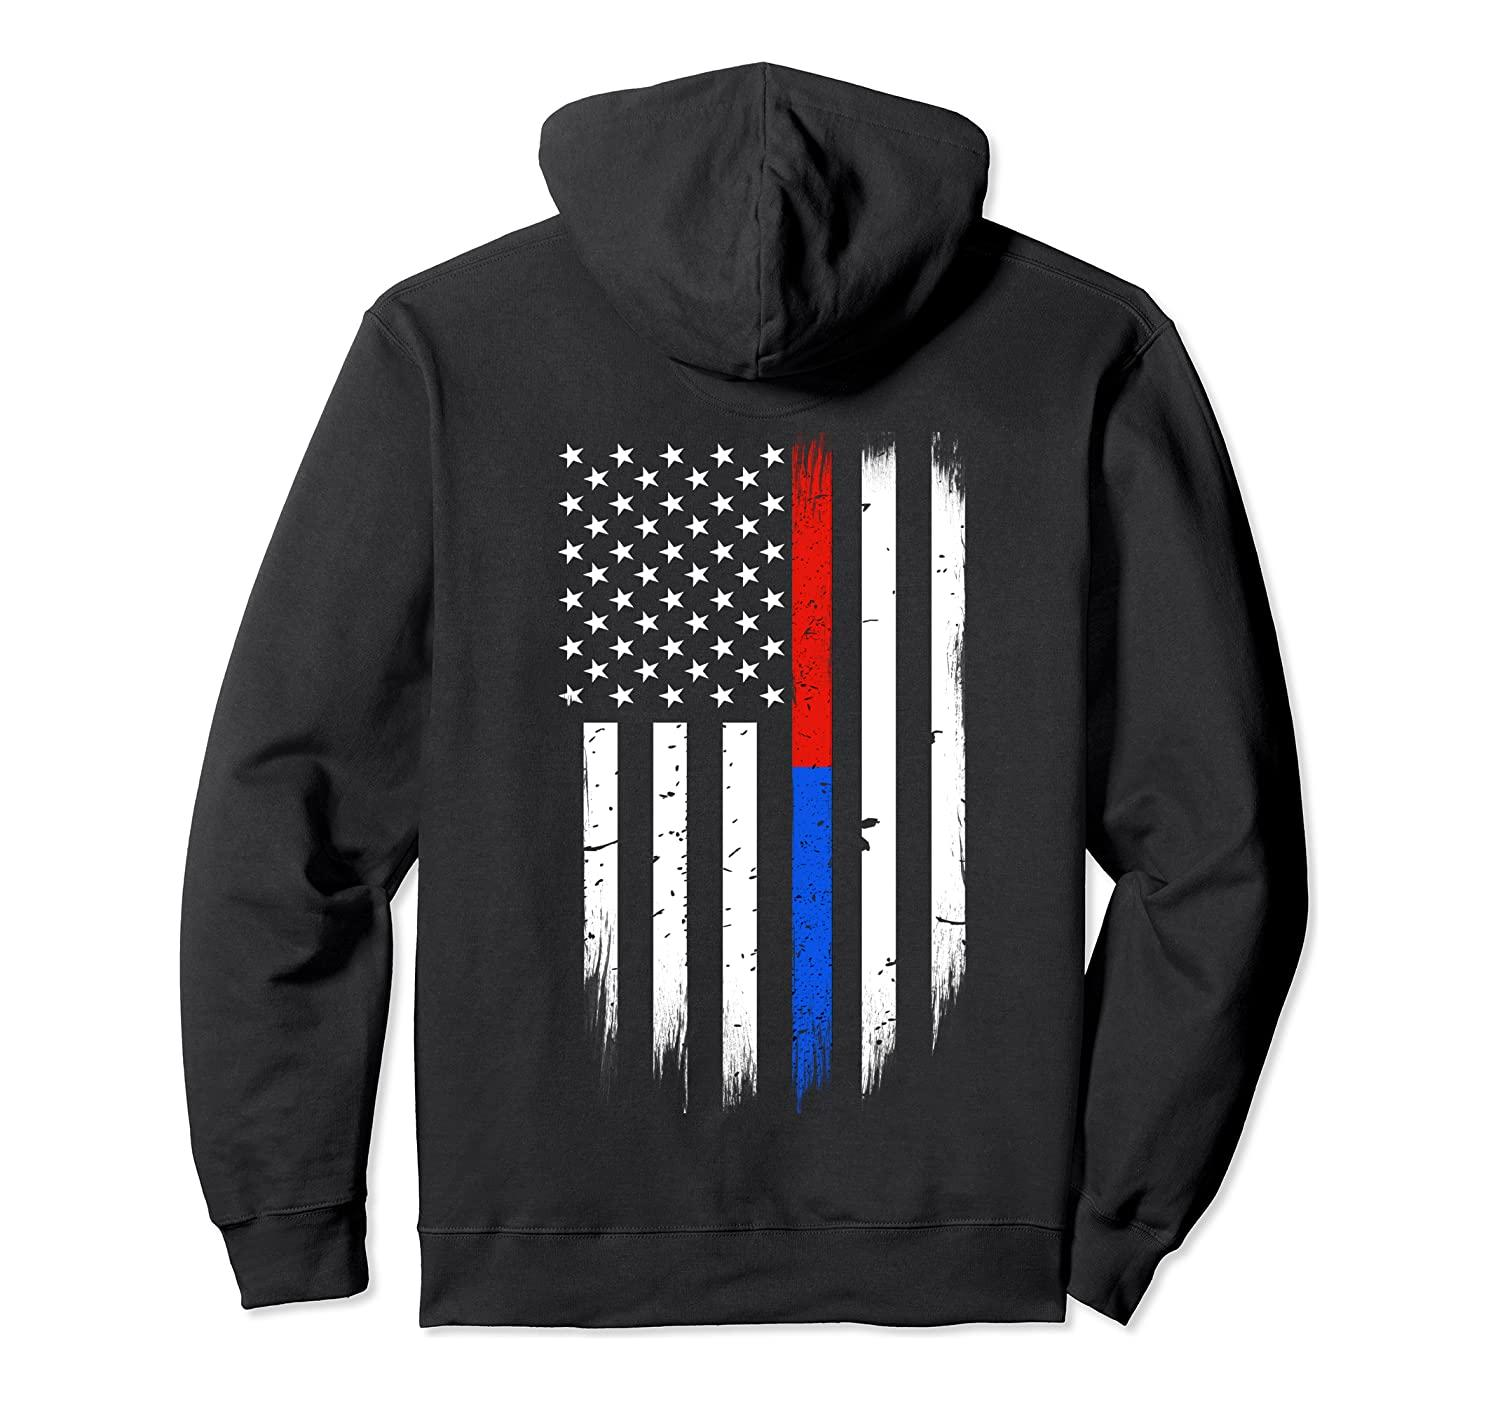 Firefighter Police Flag Thin Red Blue Line Hoodie Unisex S-5XL Black/Grey/Navy/Royal Blue/Dark Heather